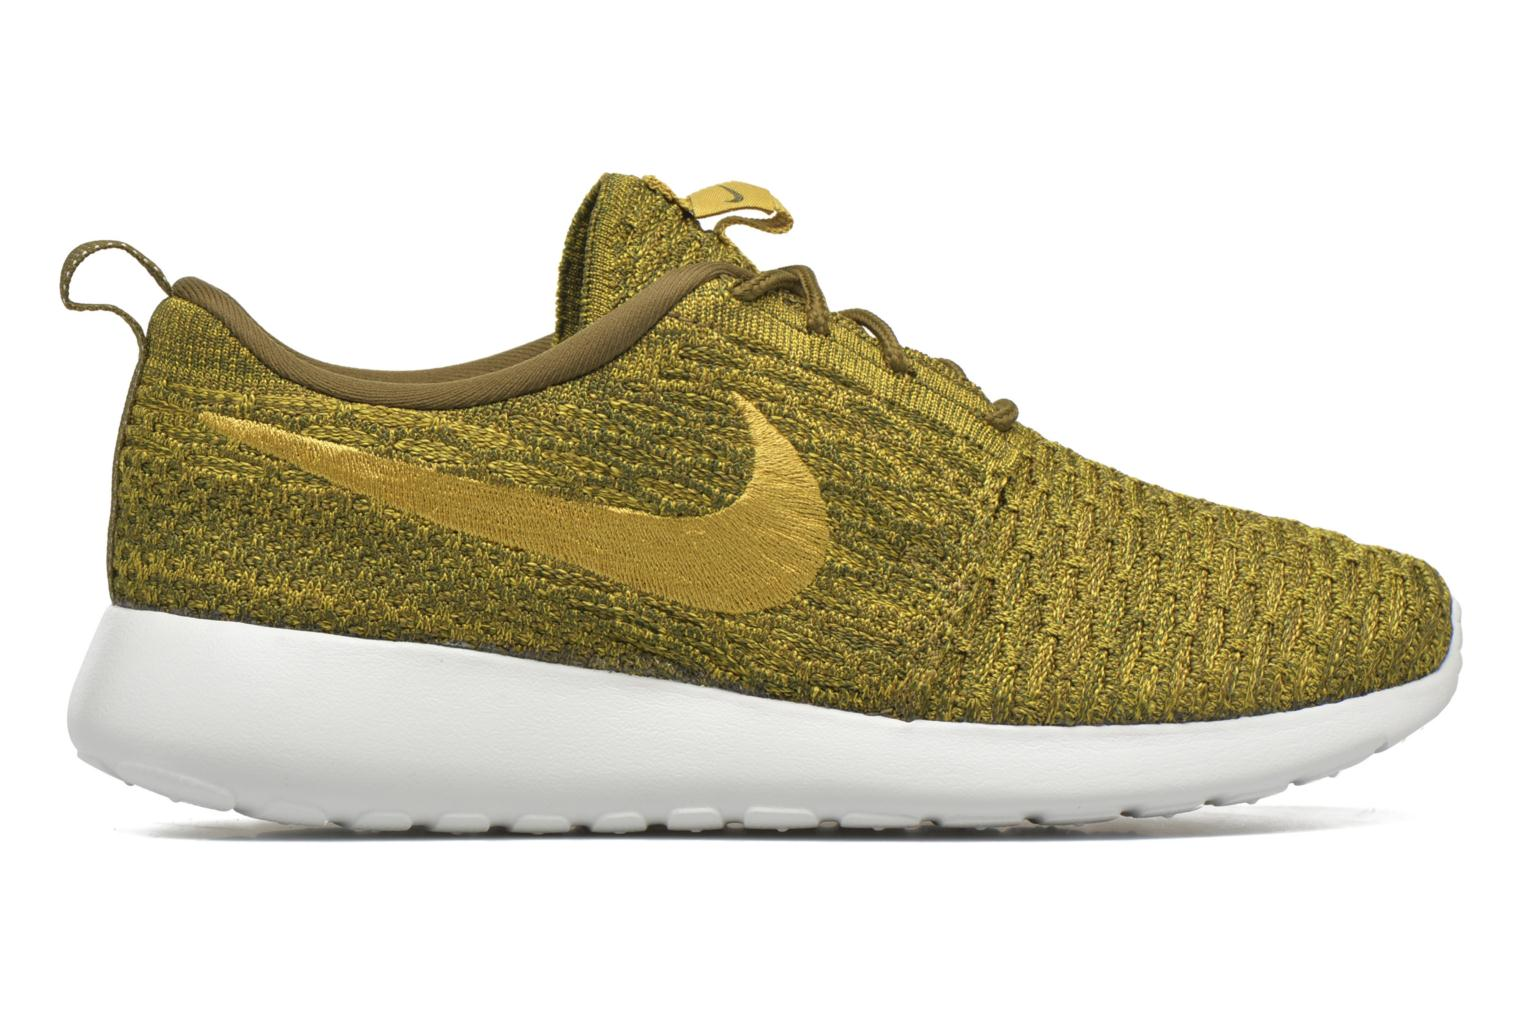 Wmns Roshe One Flyknit Olive Flak/Gold Lead-Sequoia-Sail